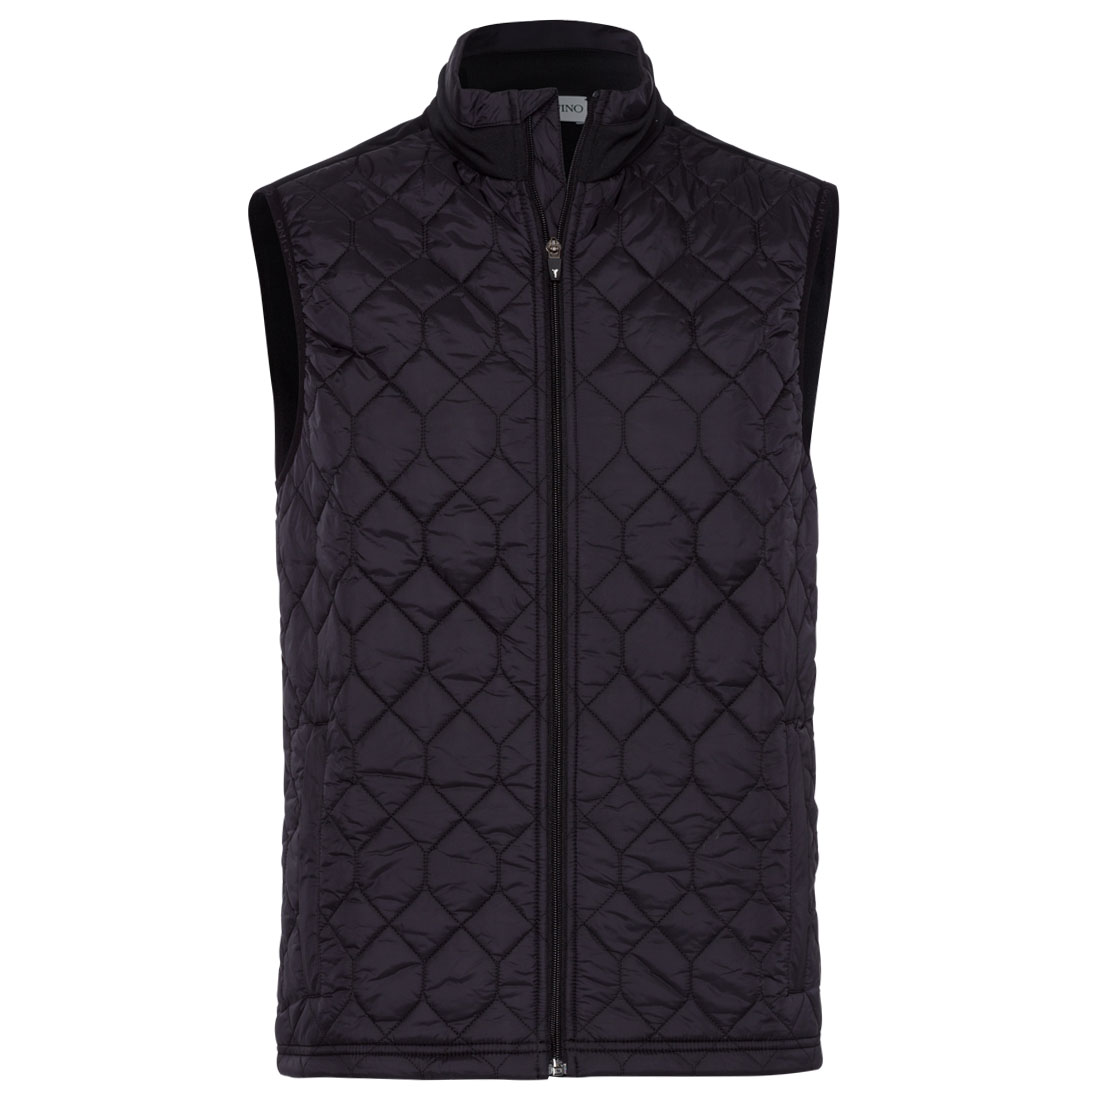 The golf waistcoat of the 21st century with cold protection